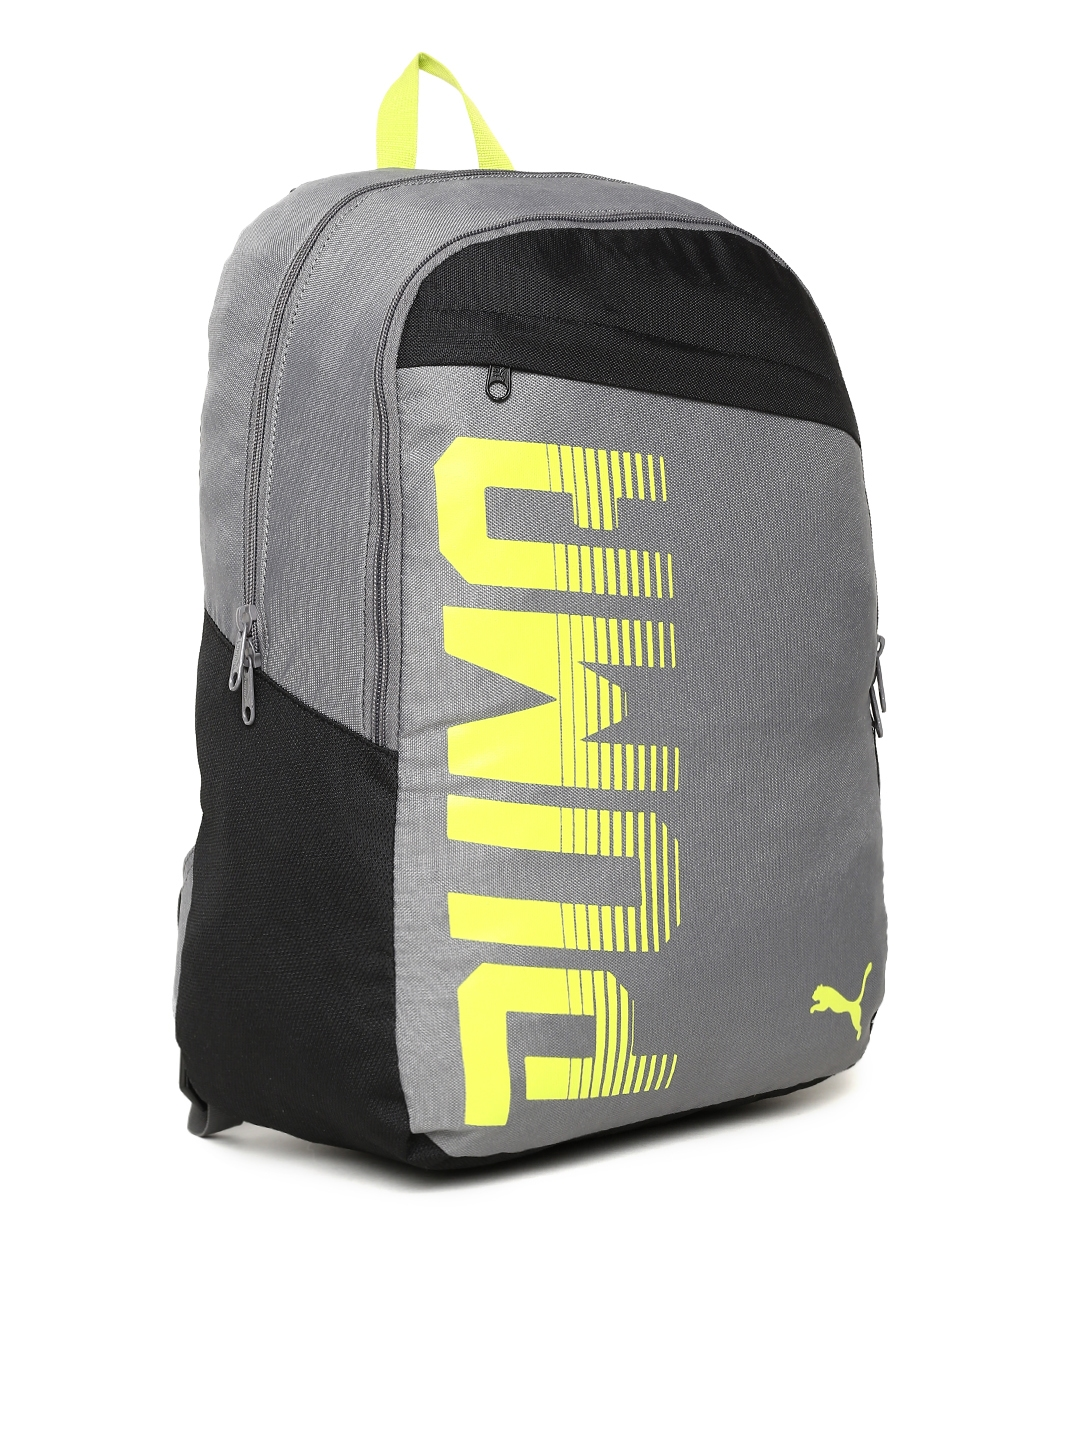 aaa26ab2d4 Buy PUMA Unisex Grey   Black Printed Pioneer I IND Backpack ...